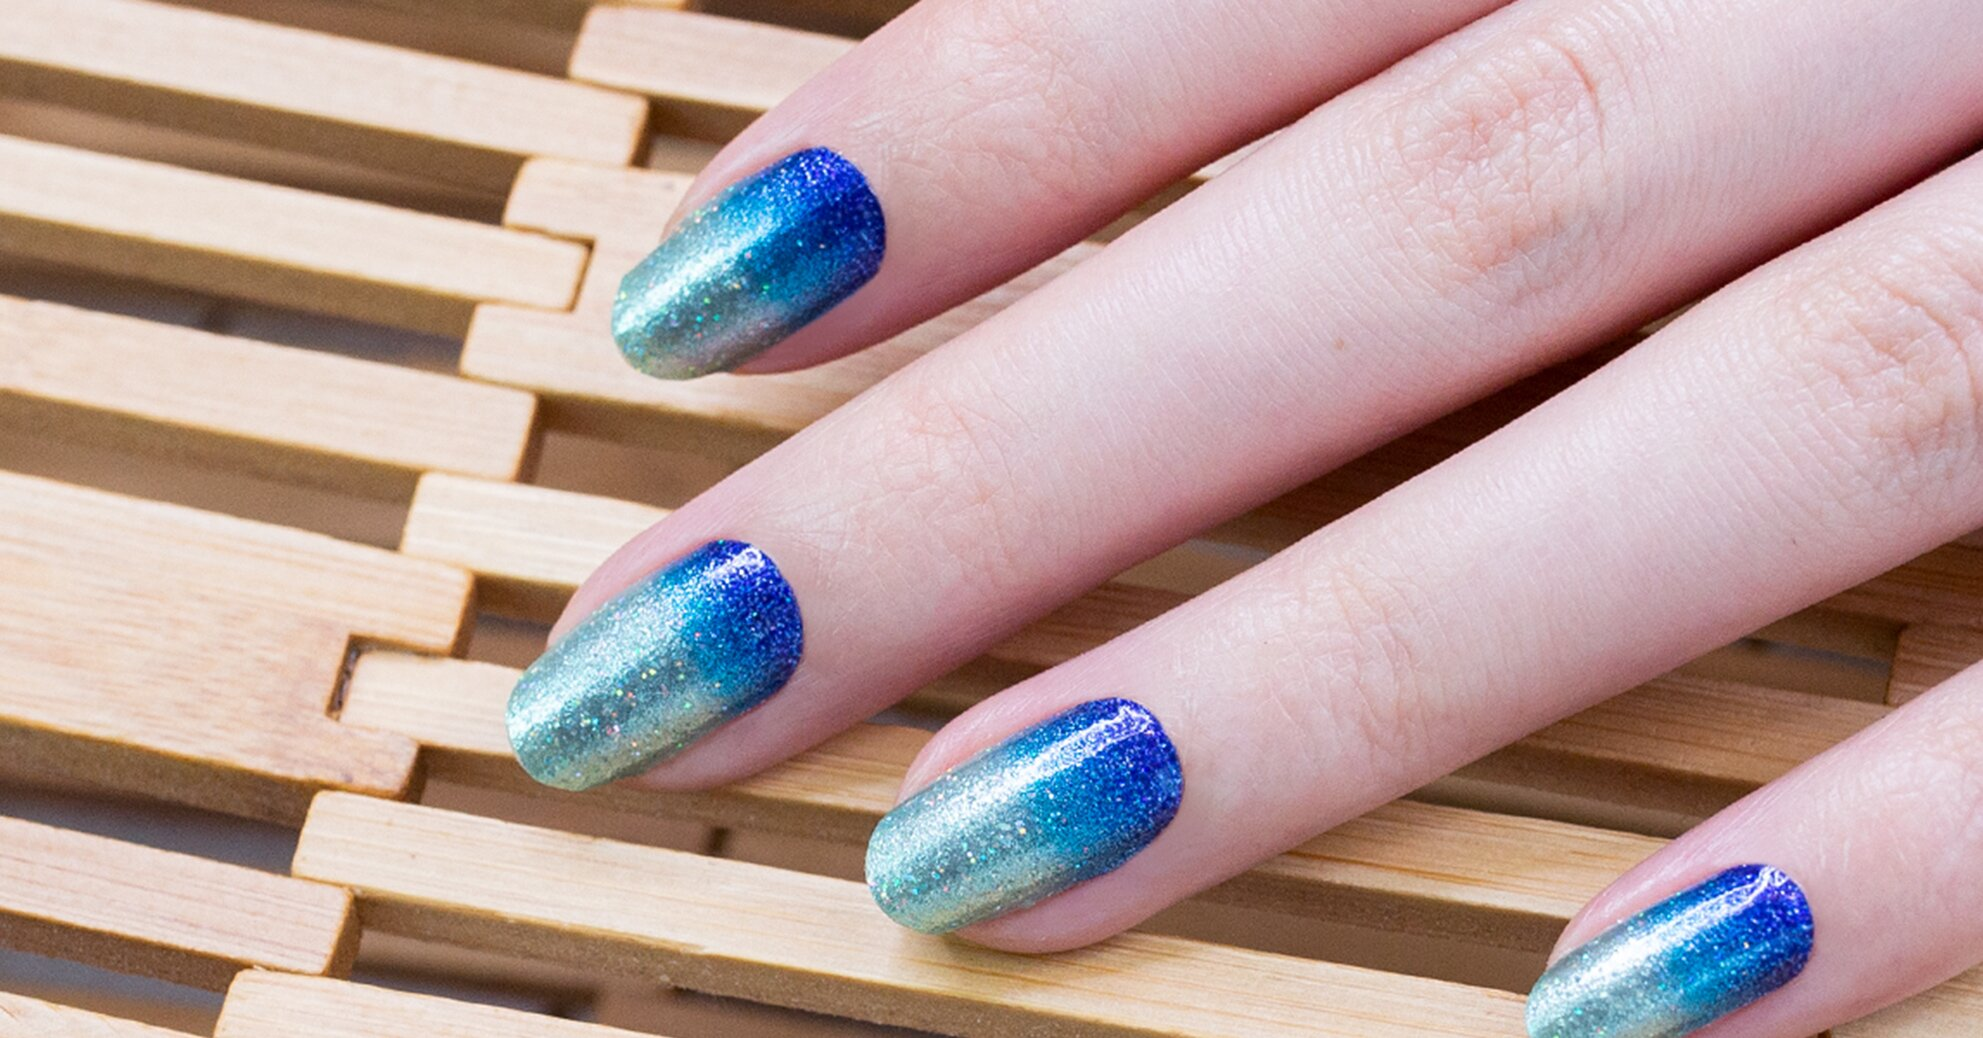 I Finally Mastered Nail Art Thanks to These Salon-Quality Nail Stickers